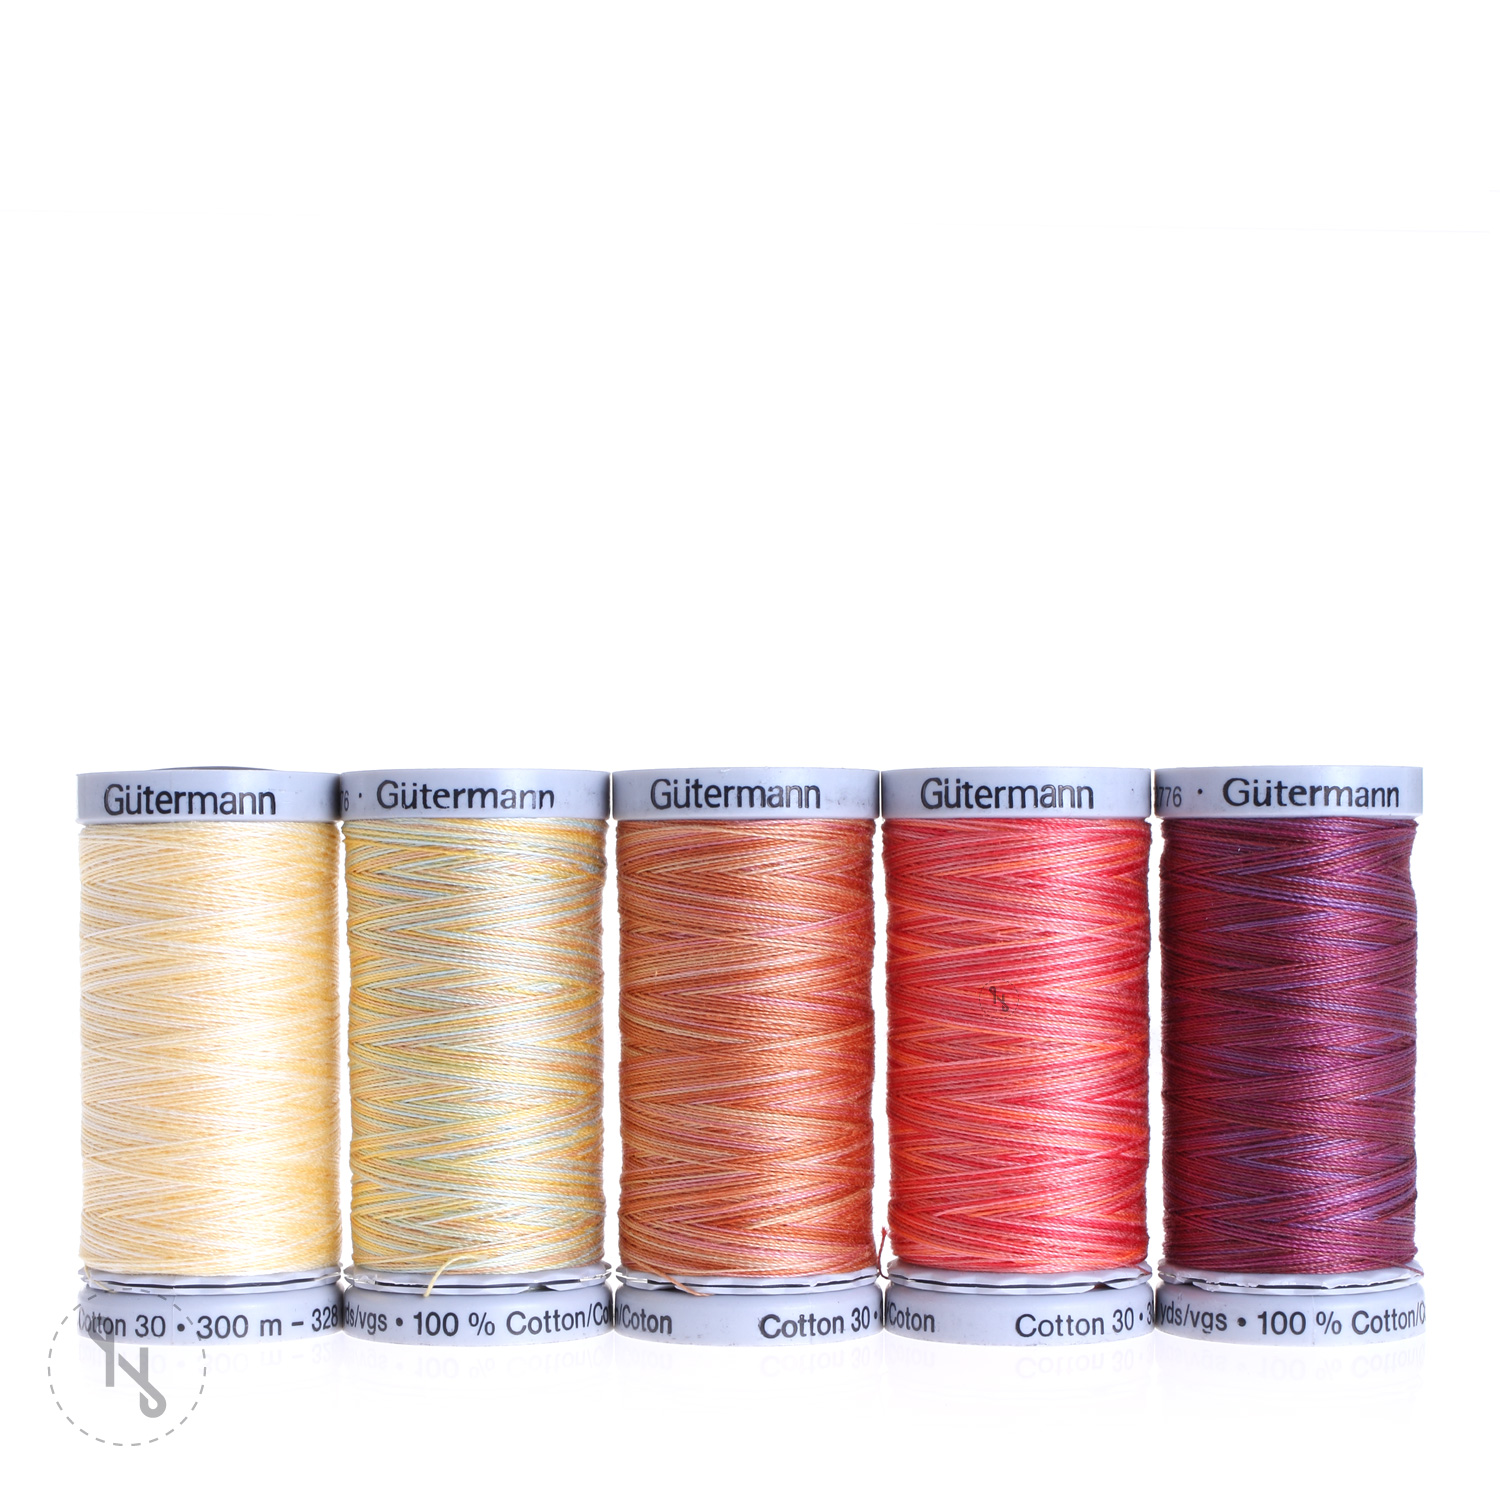 GÜTERMANN Stickfadenset Cotton 30 300m multicolor 5 Spulen gelb/rot